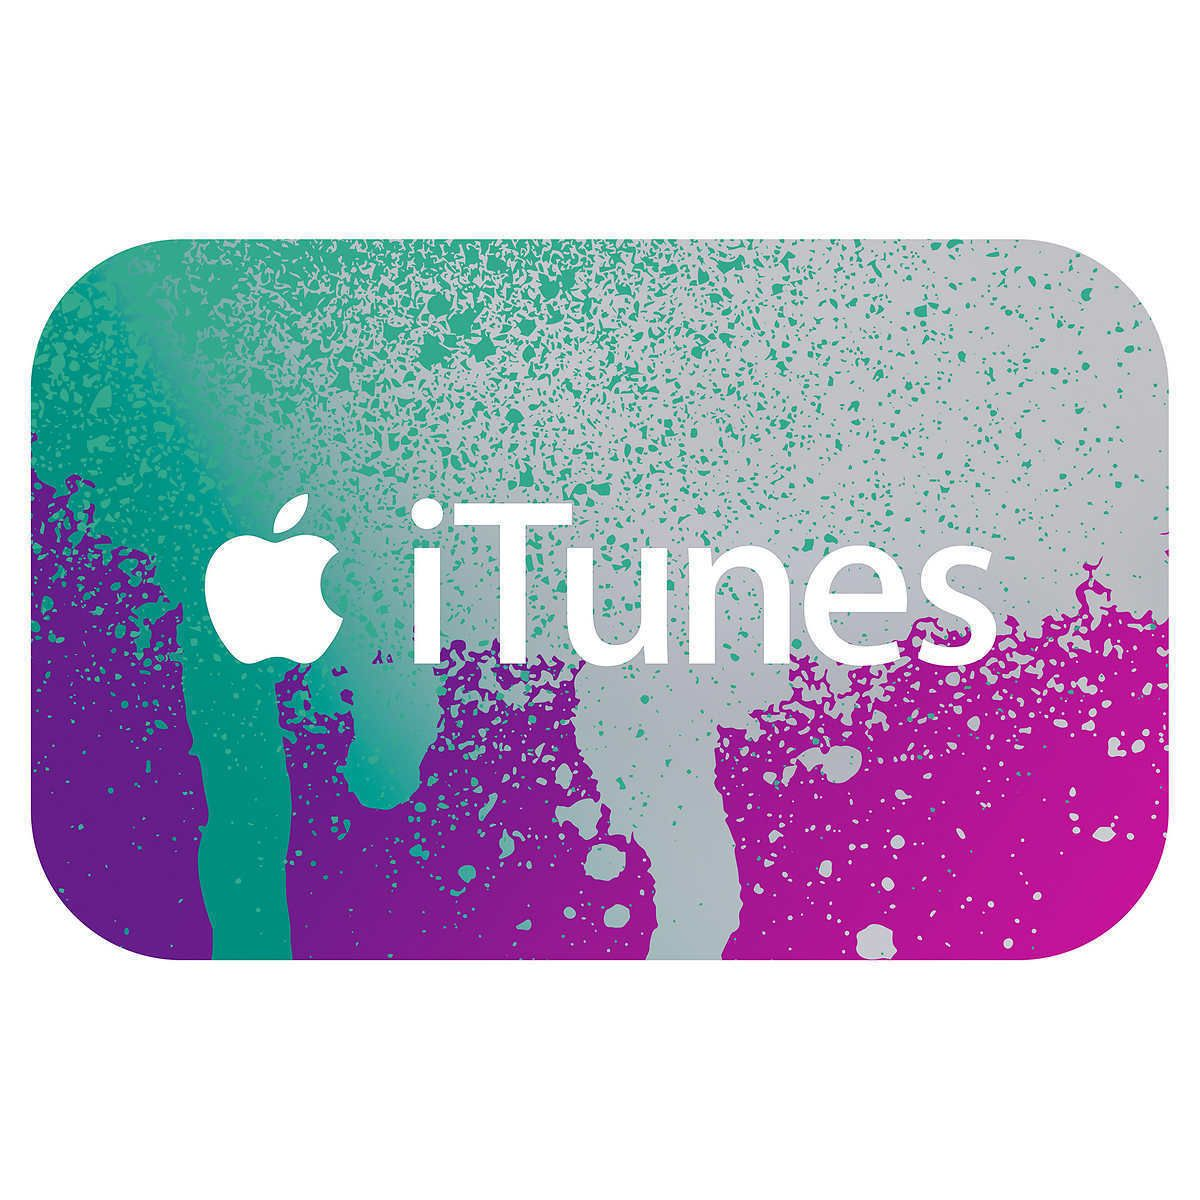 Apple Itunes Gift Card 200 Us Dollars 100 X 2 200 Http